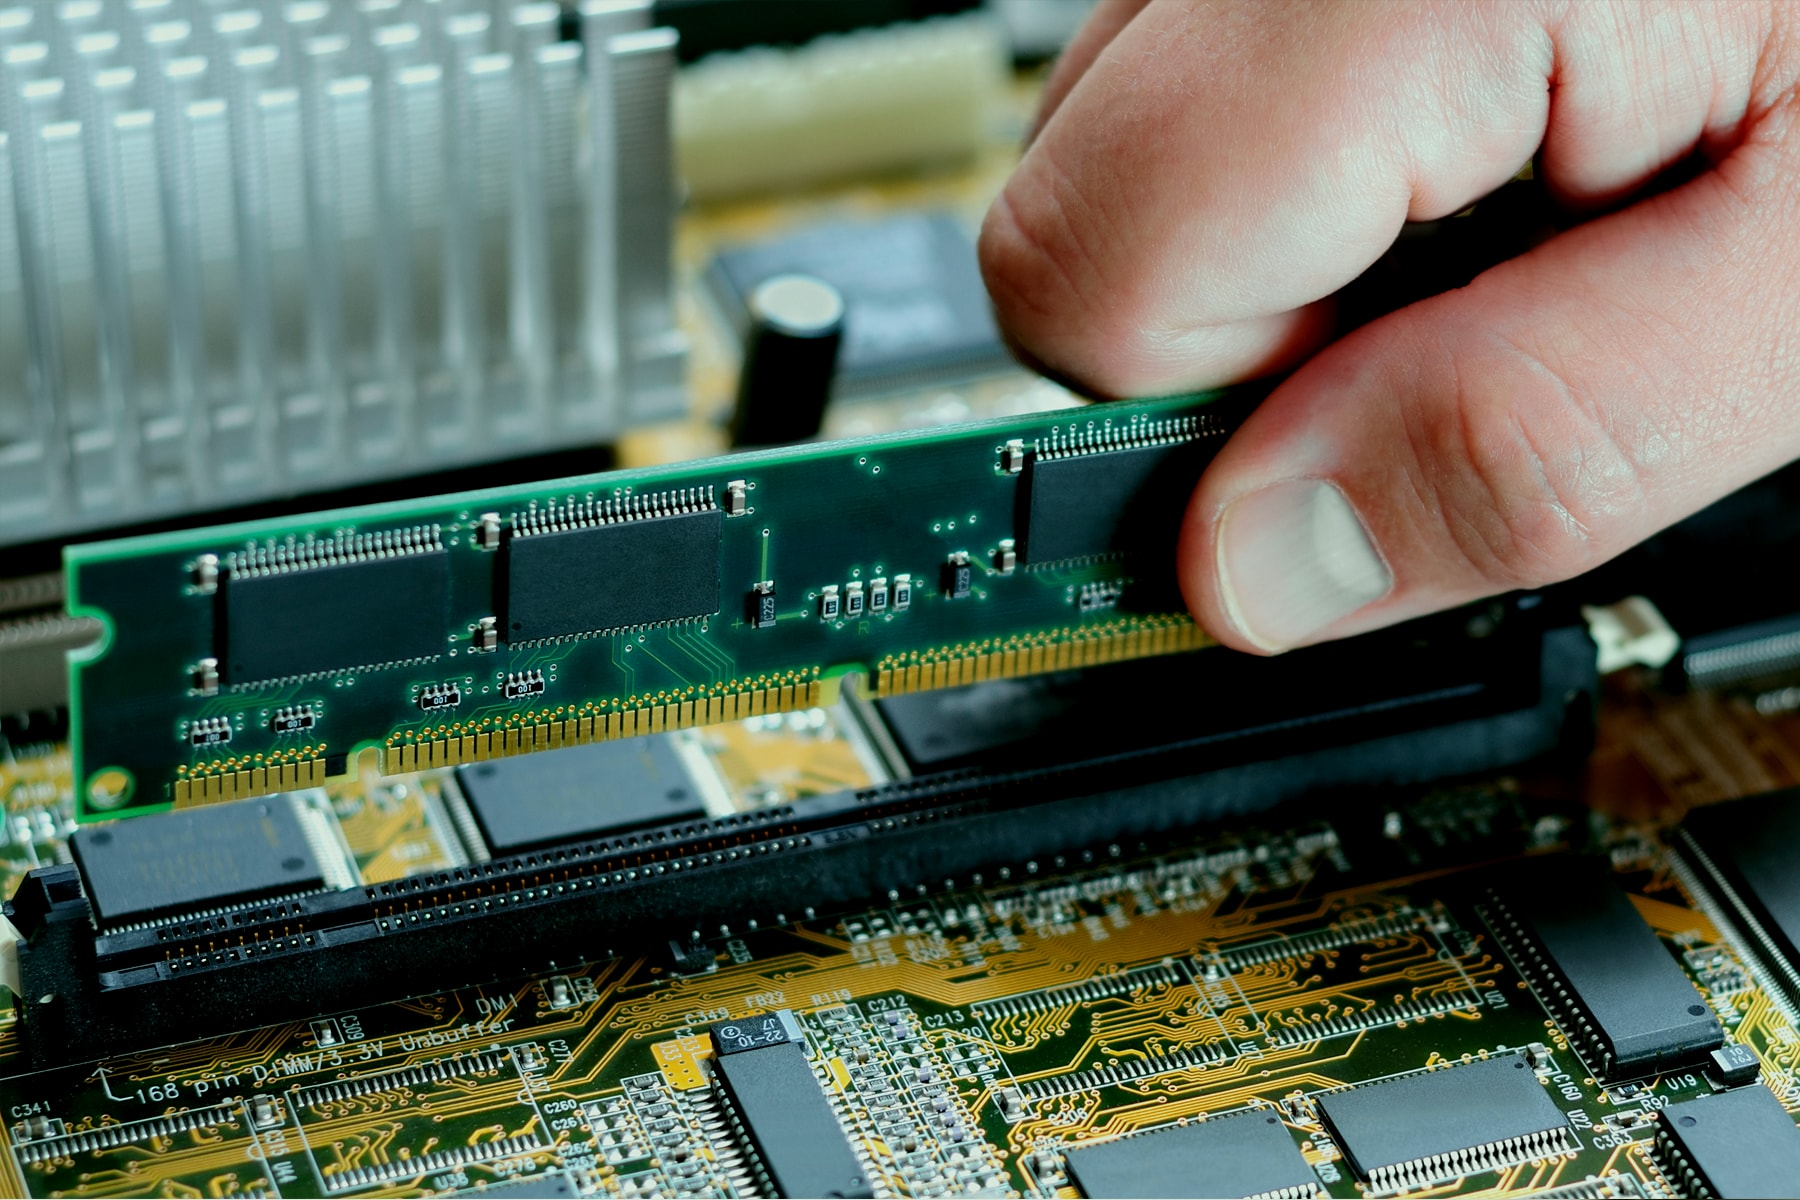 Best Ram Brand Narrowing Down Your Options Jan 2019 Electrical Circuits Howstuffworks